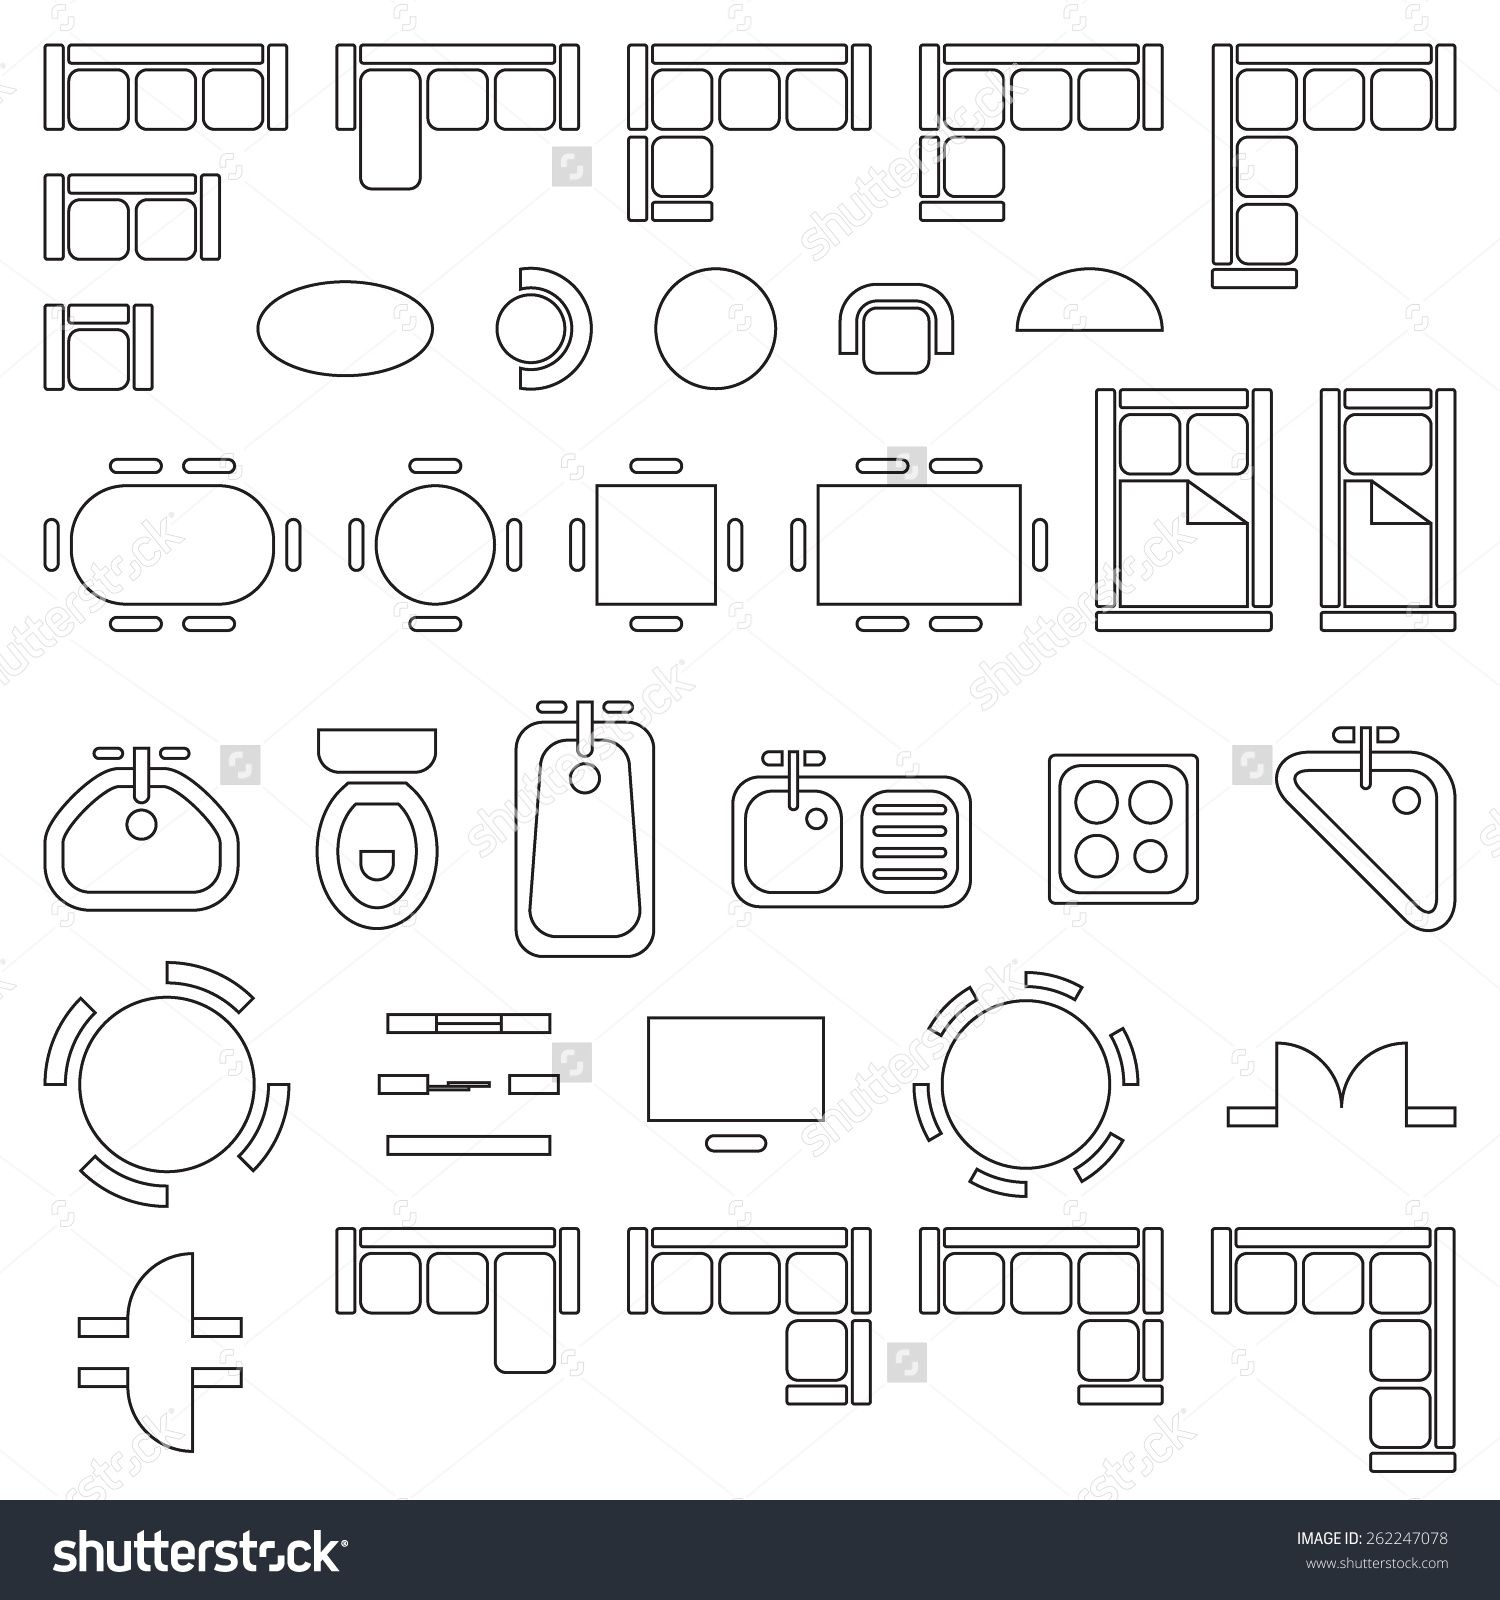 Standard Furniture Symbols Used In Architecture Plans border=